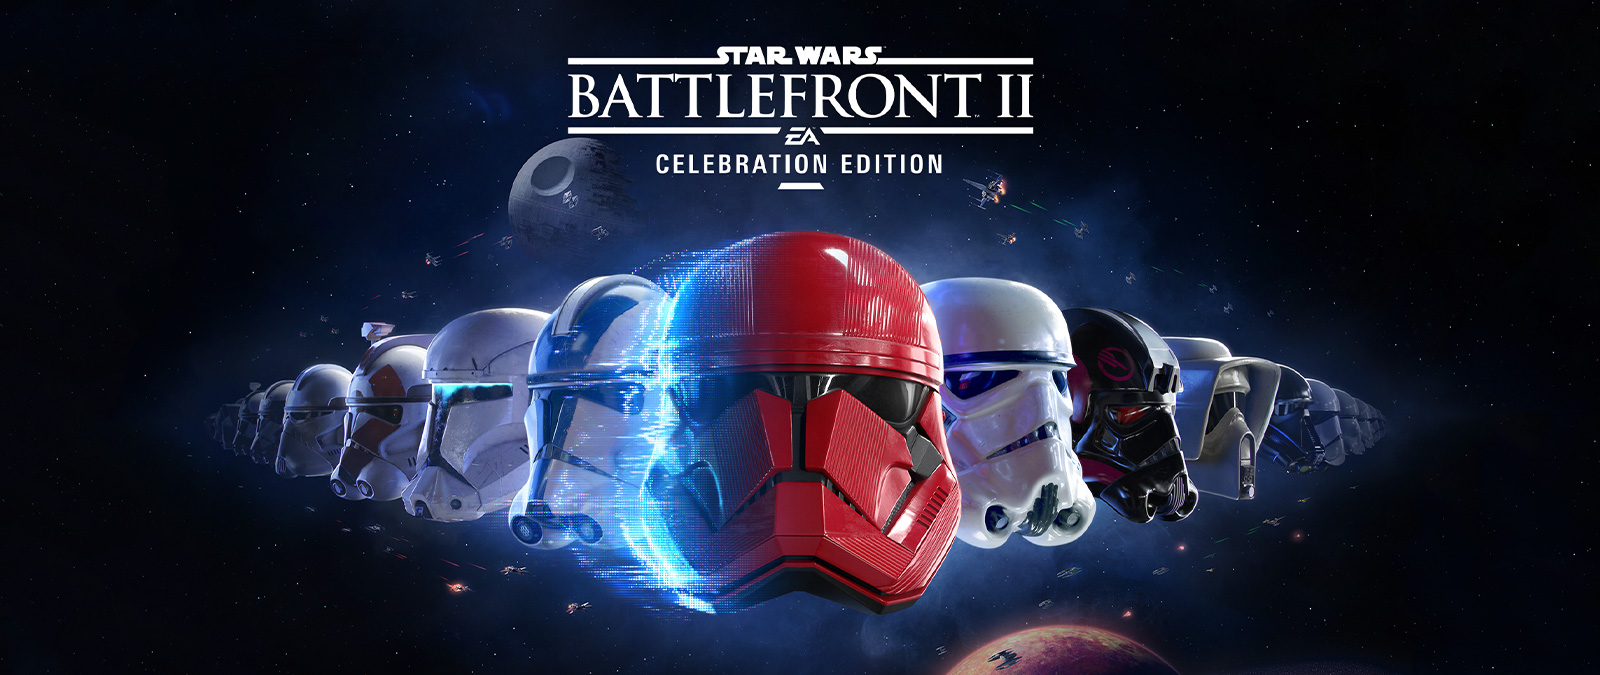 Star Wars Battlefront 2, line-up of many different stormtrooper masks with the galaxy in the background